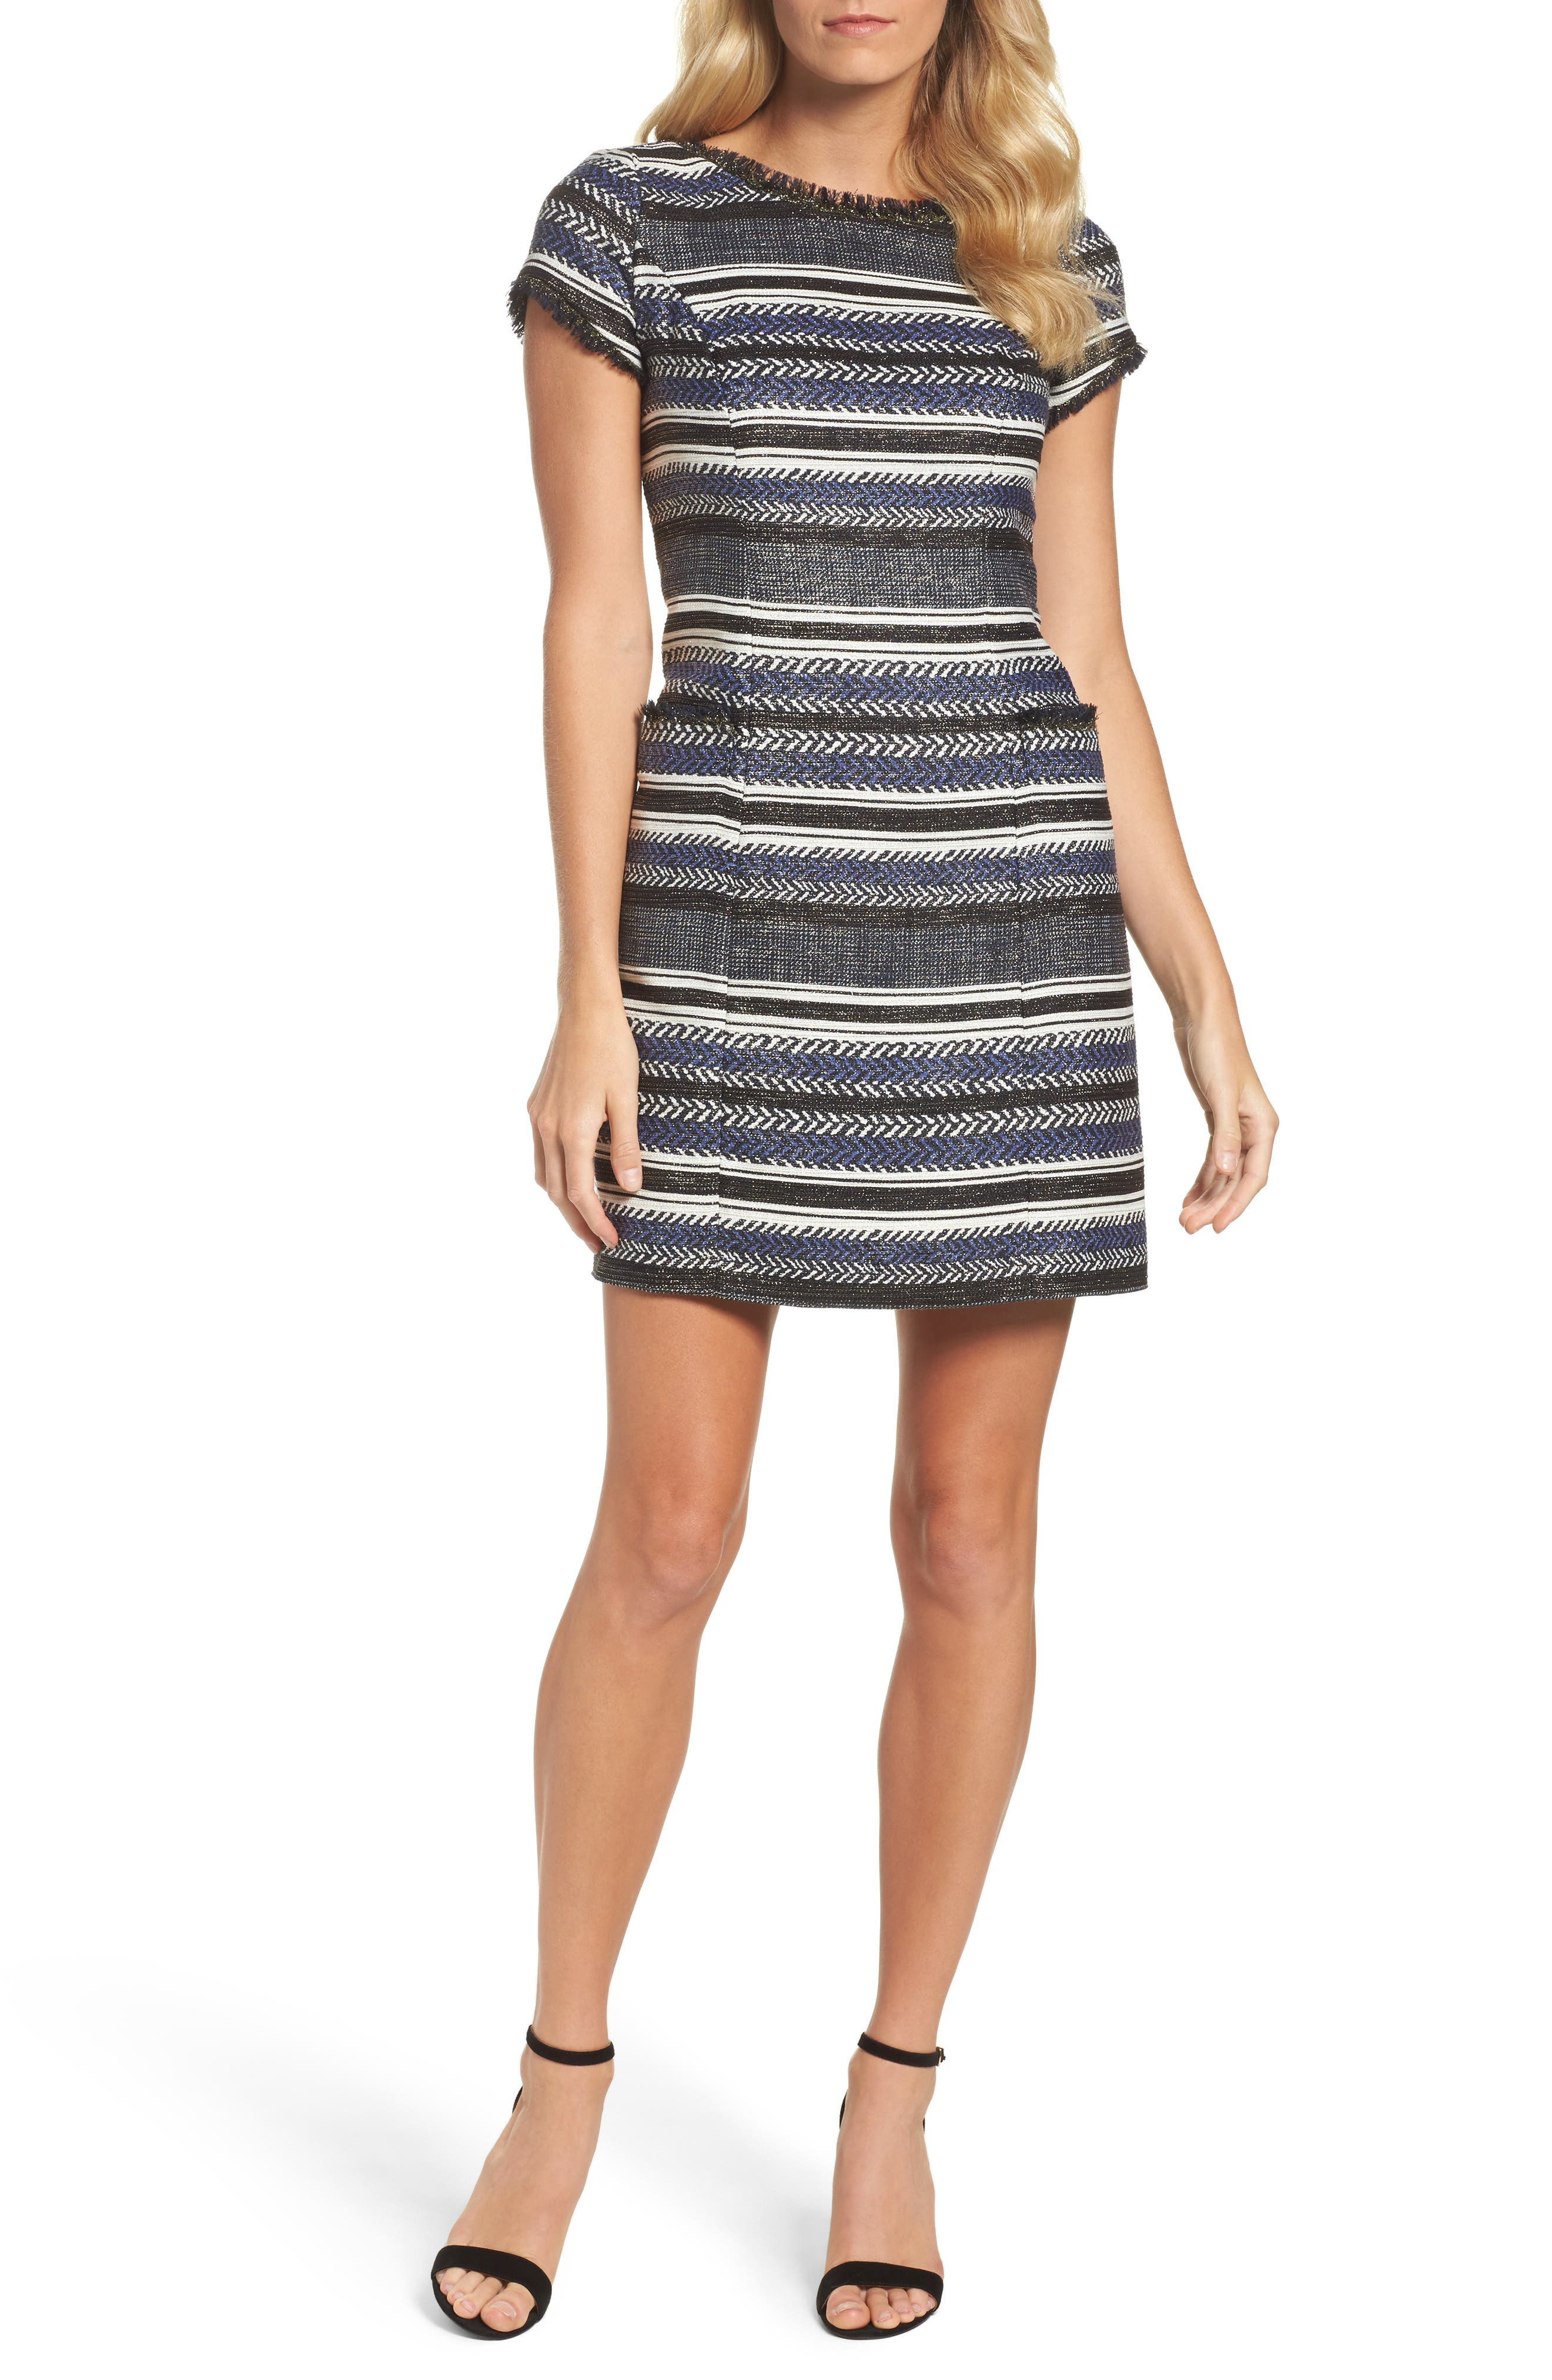 Alternate Image 1 Selected - Adrianna Papell Stripe Sheath Dress